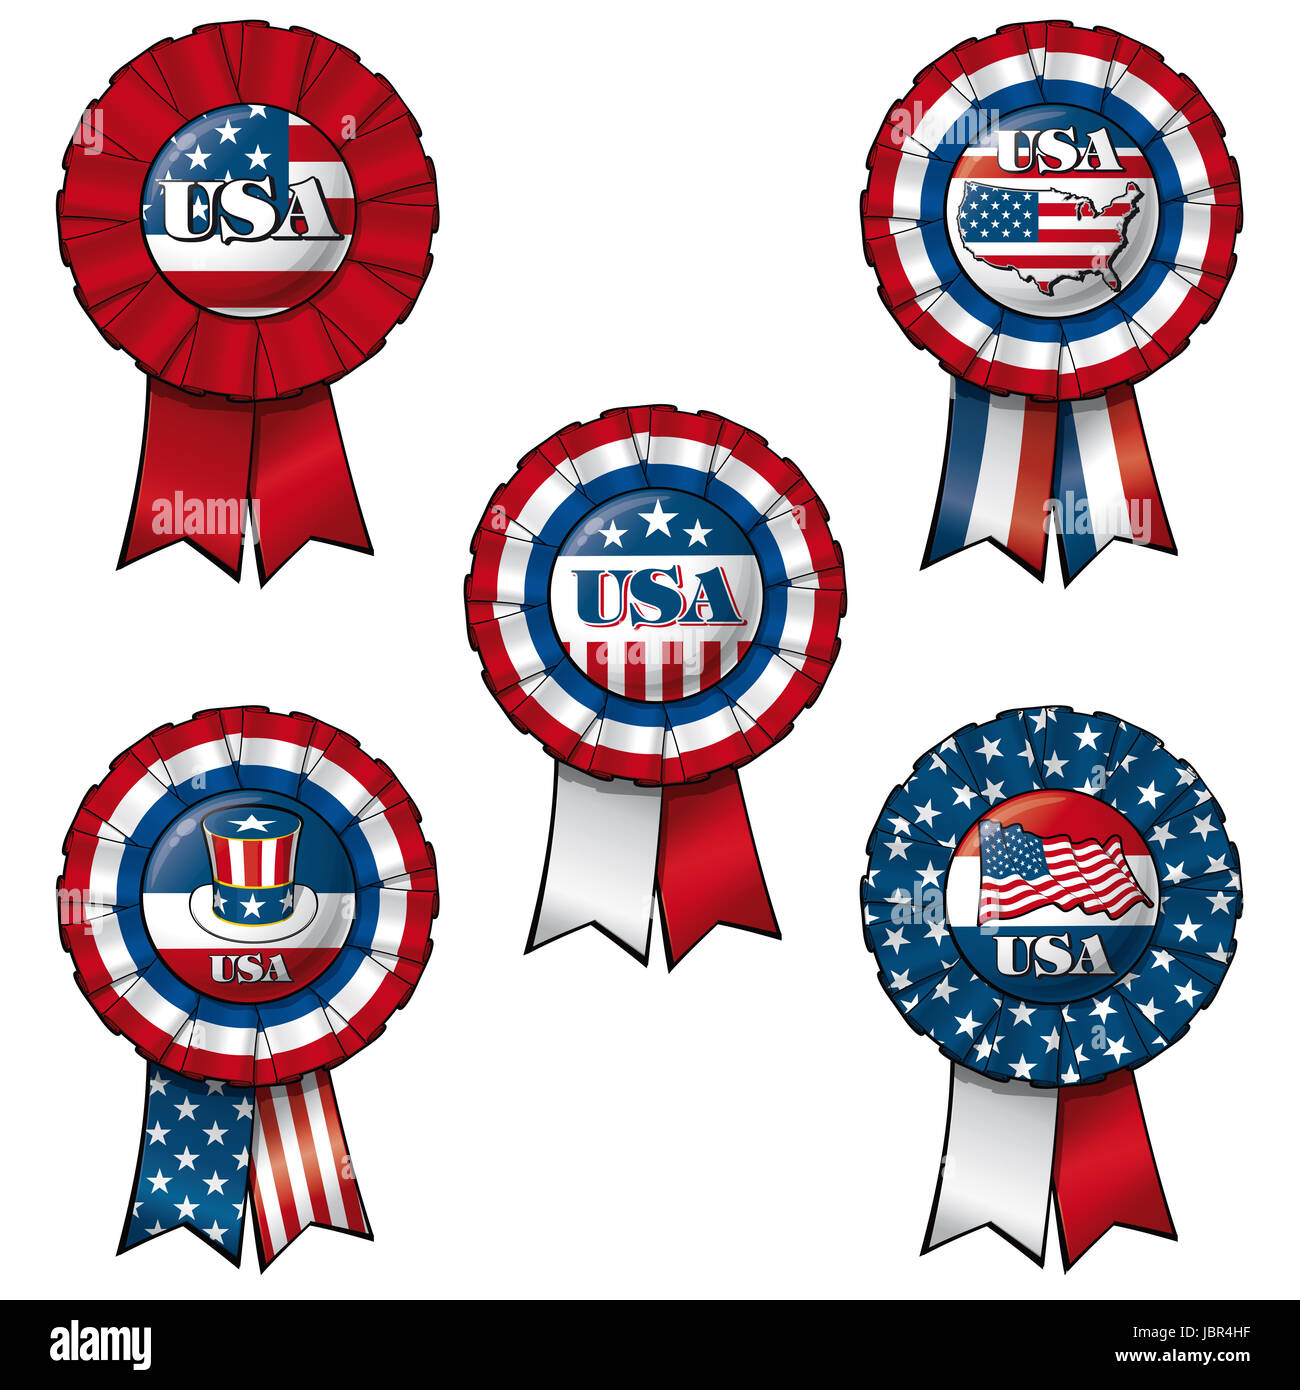 Set of 5 interchangeable Ribbons and Buttons on 'USA' subject.  Each of the 5 items on separate layers. - Stock Image